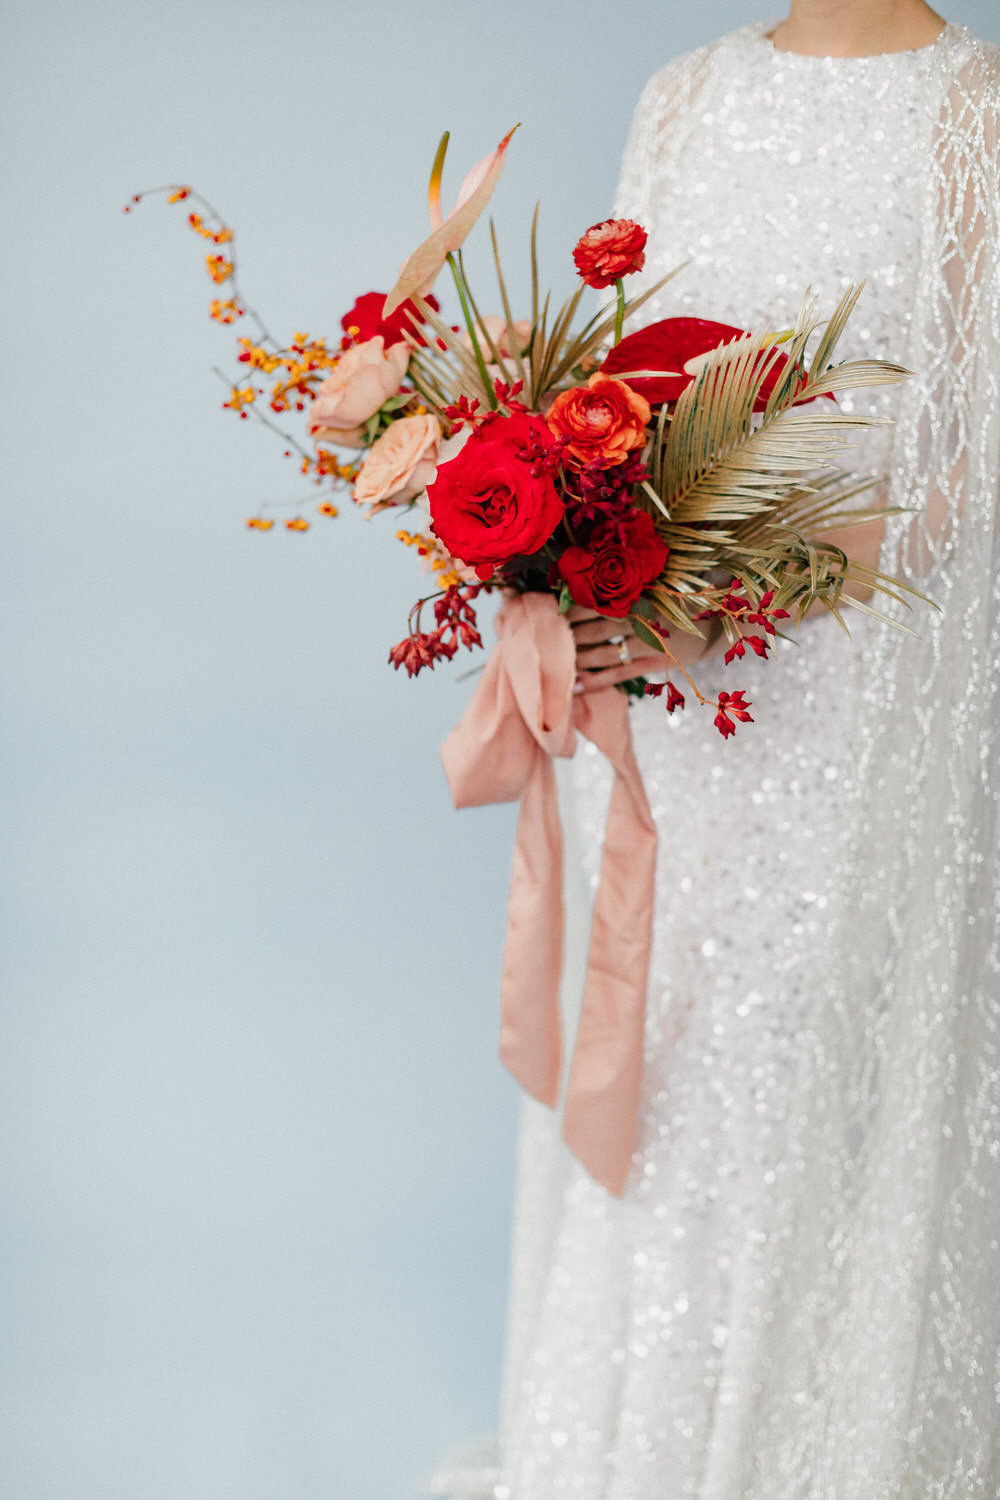 design-exchange-wedding-christine-lim-photography-white-oak-flower-co-047